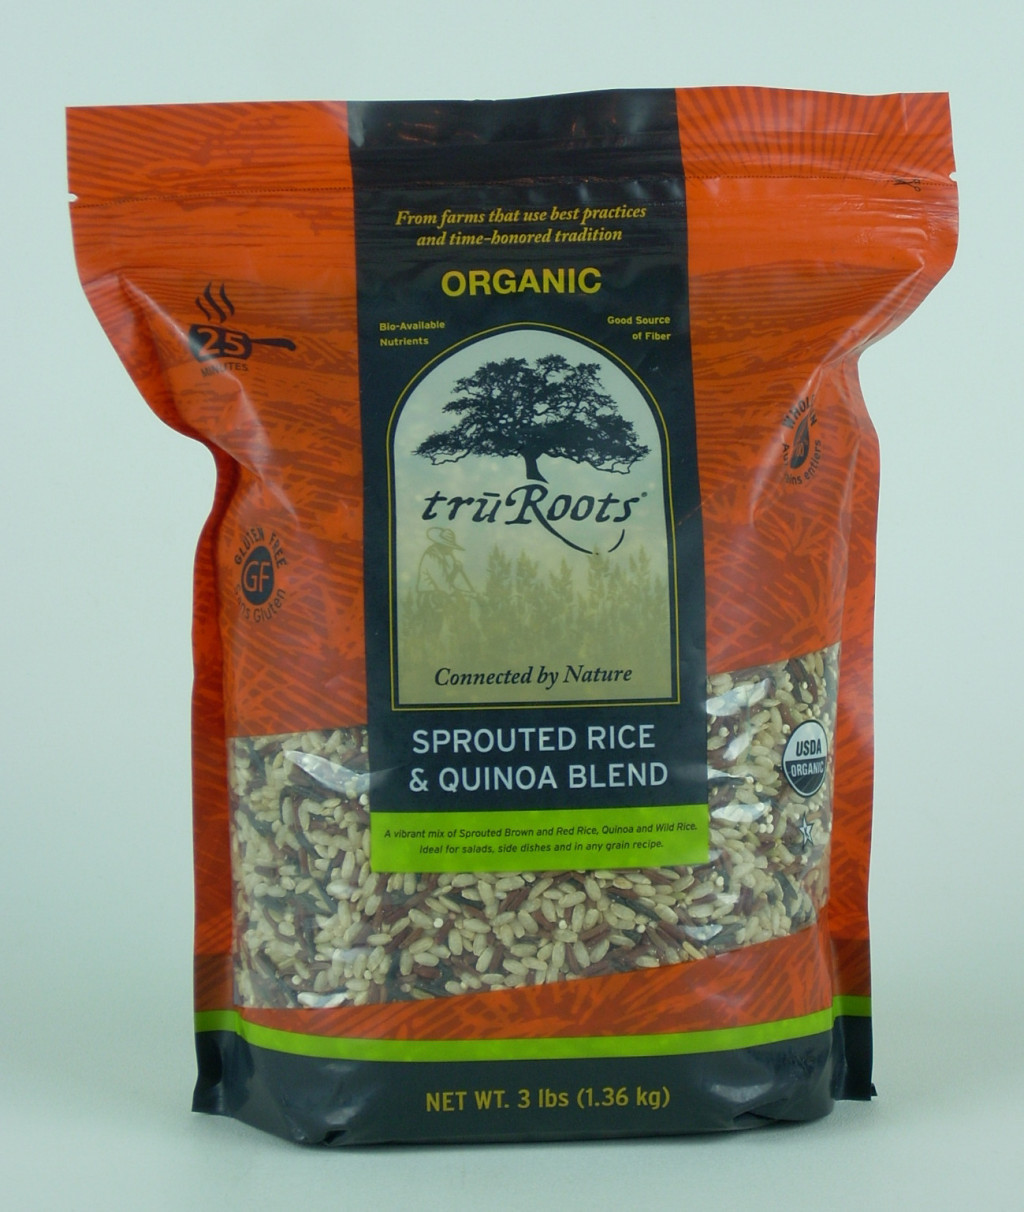 Truroots Organic Sprouted Rice And Quinoa Blend Bag 3 Lbs  TruRoots 3 12 Lbs ORGANIC WILD RICE & QUINOA BLEND